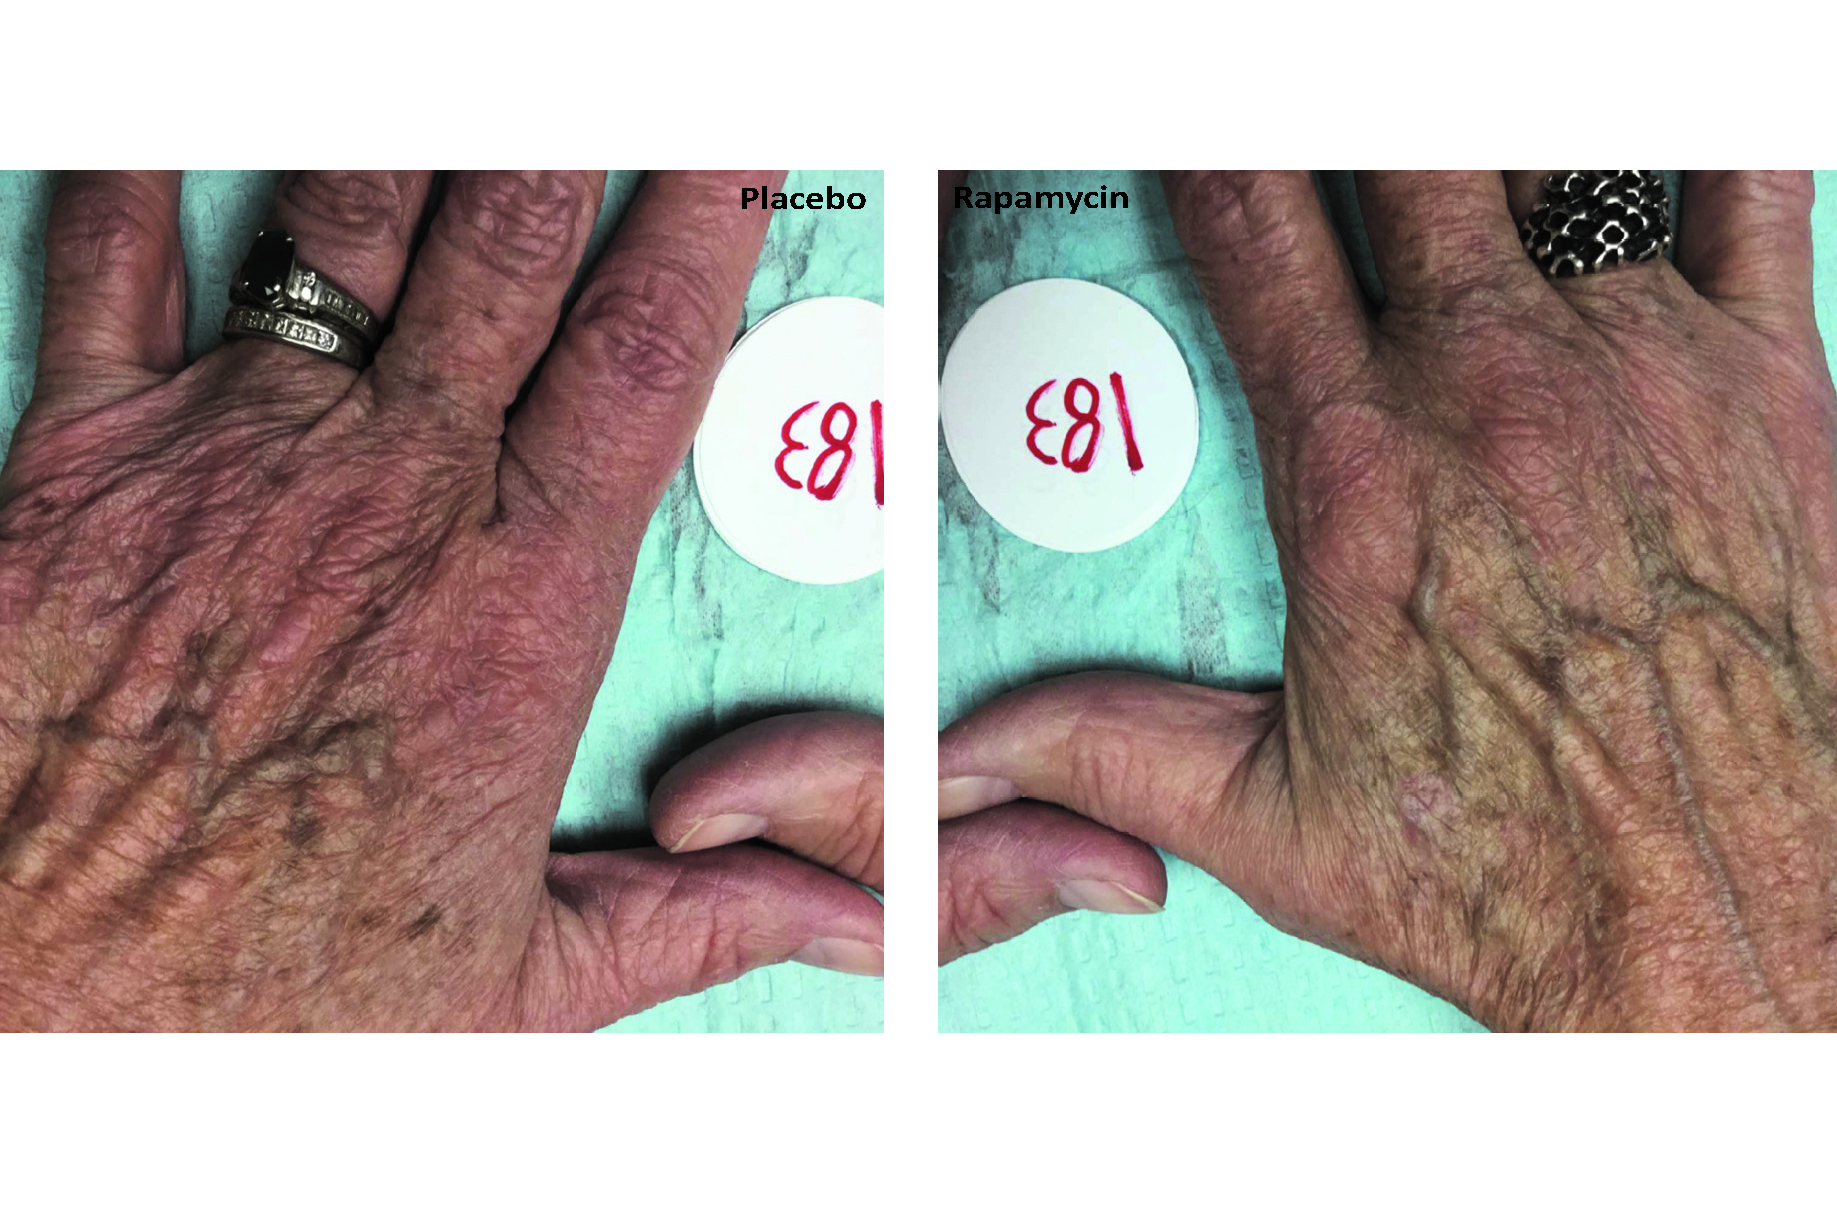 Hand treated with rapymycin alongside placebo untreated hand